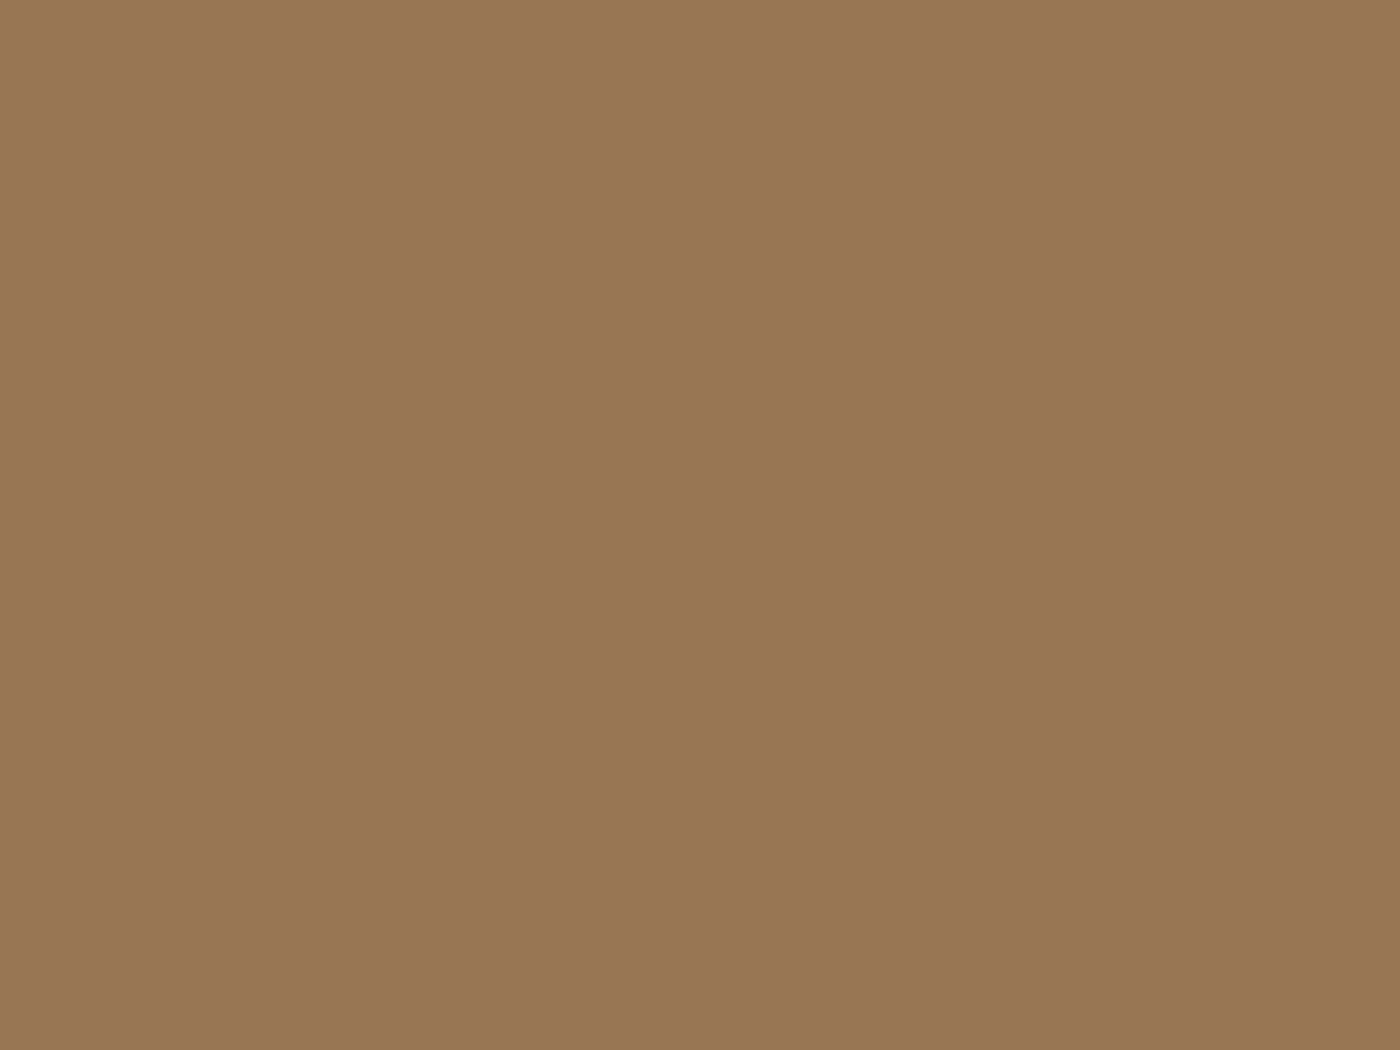 1400x1050 Pale Brown Solid Color Background